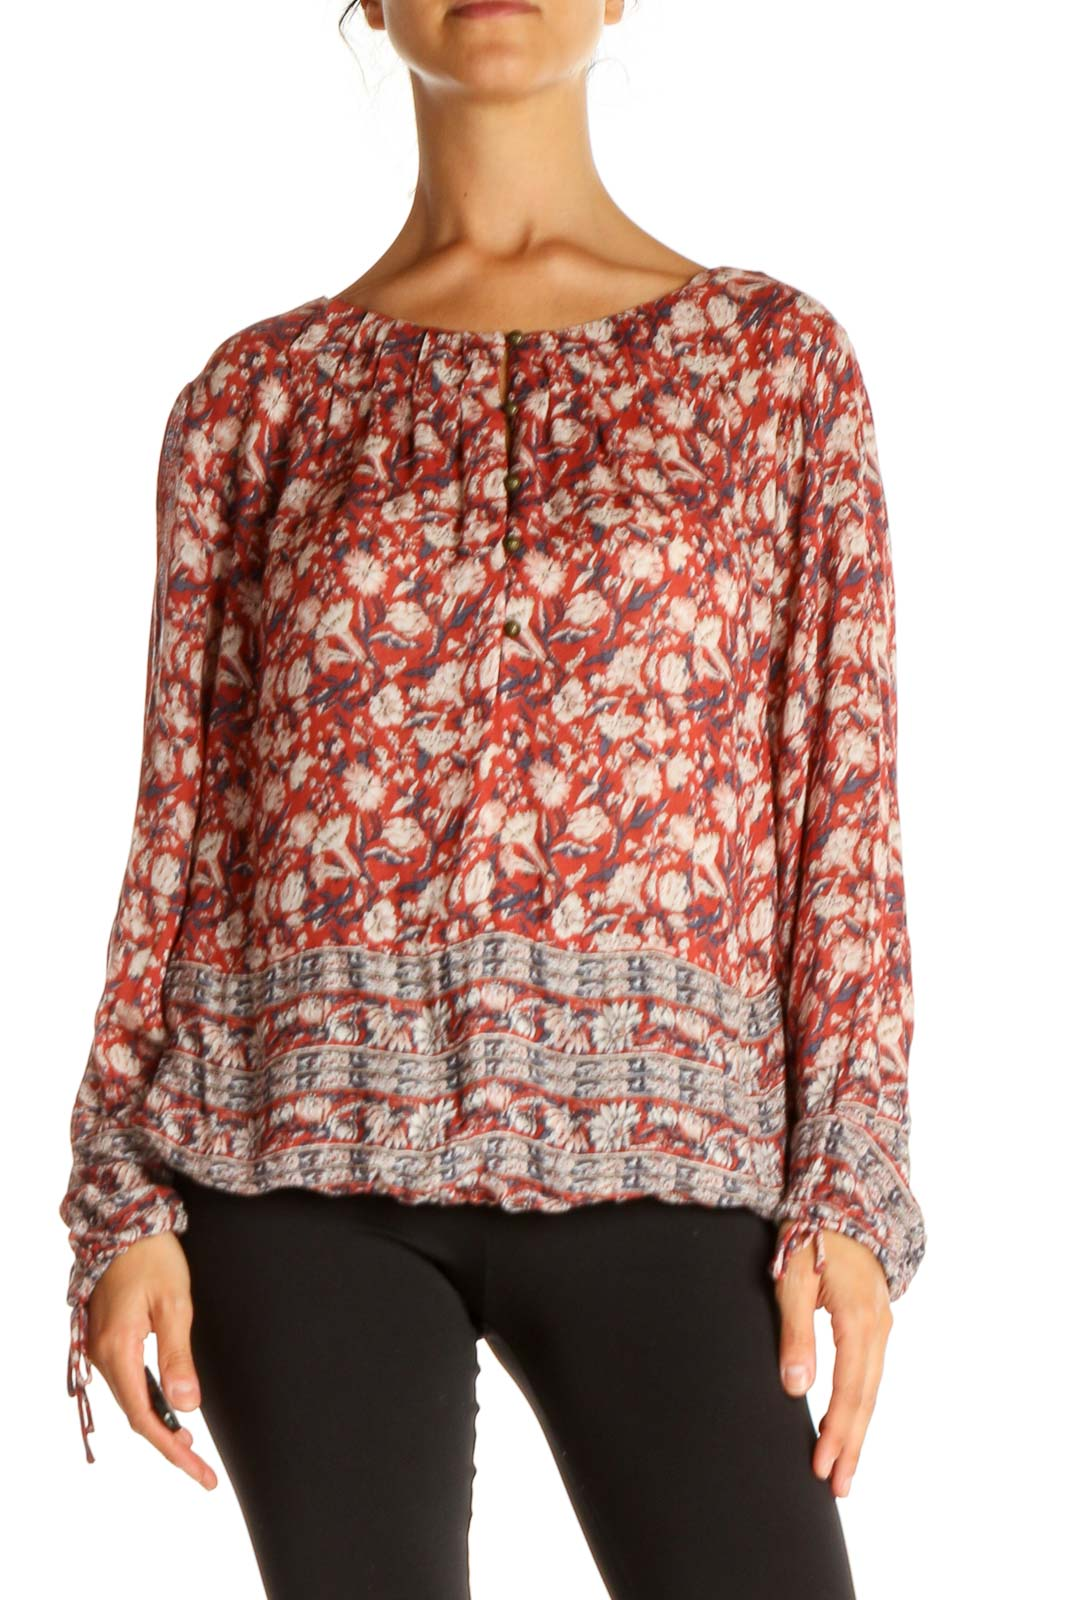 Red Floral Print Retro Blouse Front